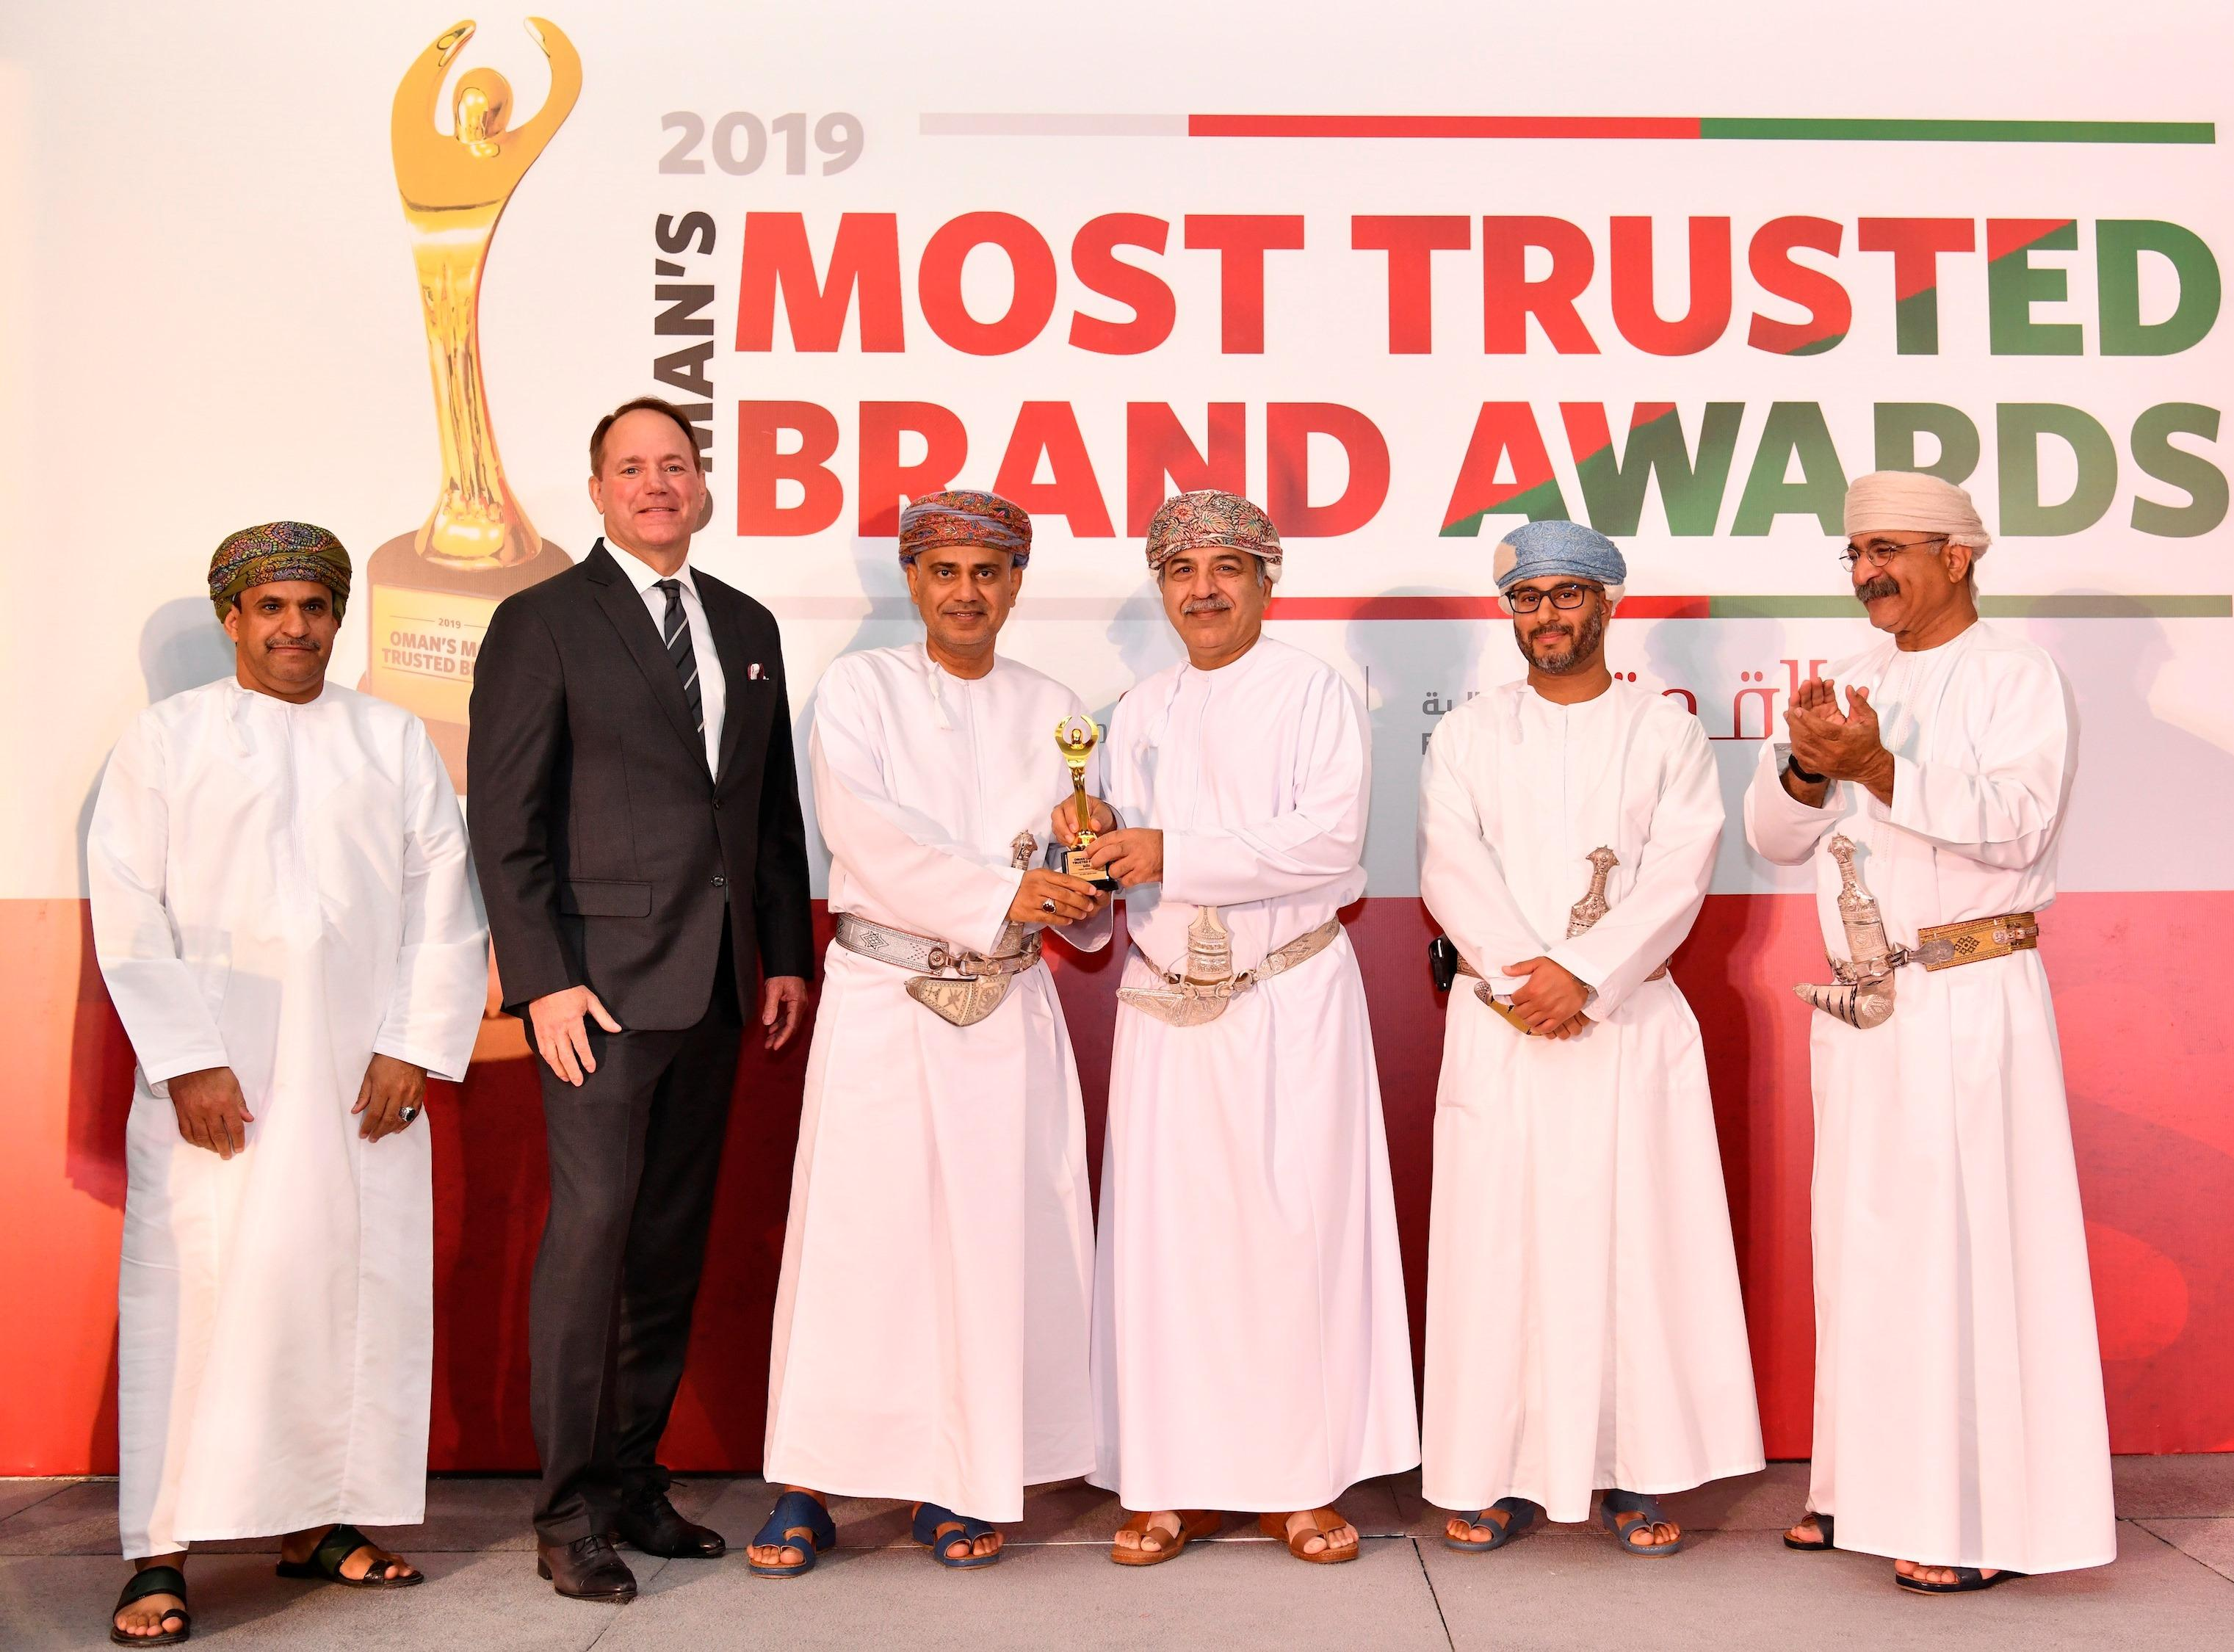 Bahar wins Oman's Most Trusted Brand award for the second time logo